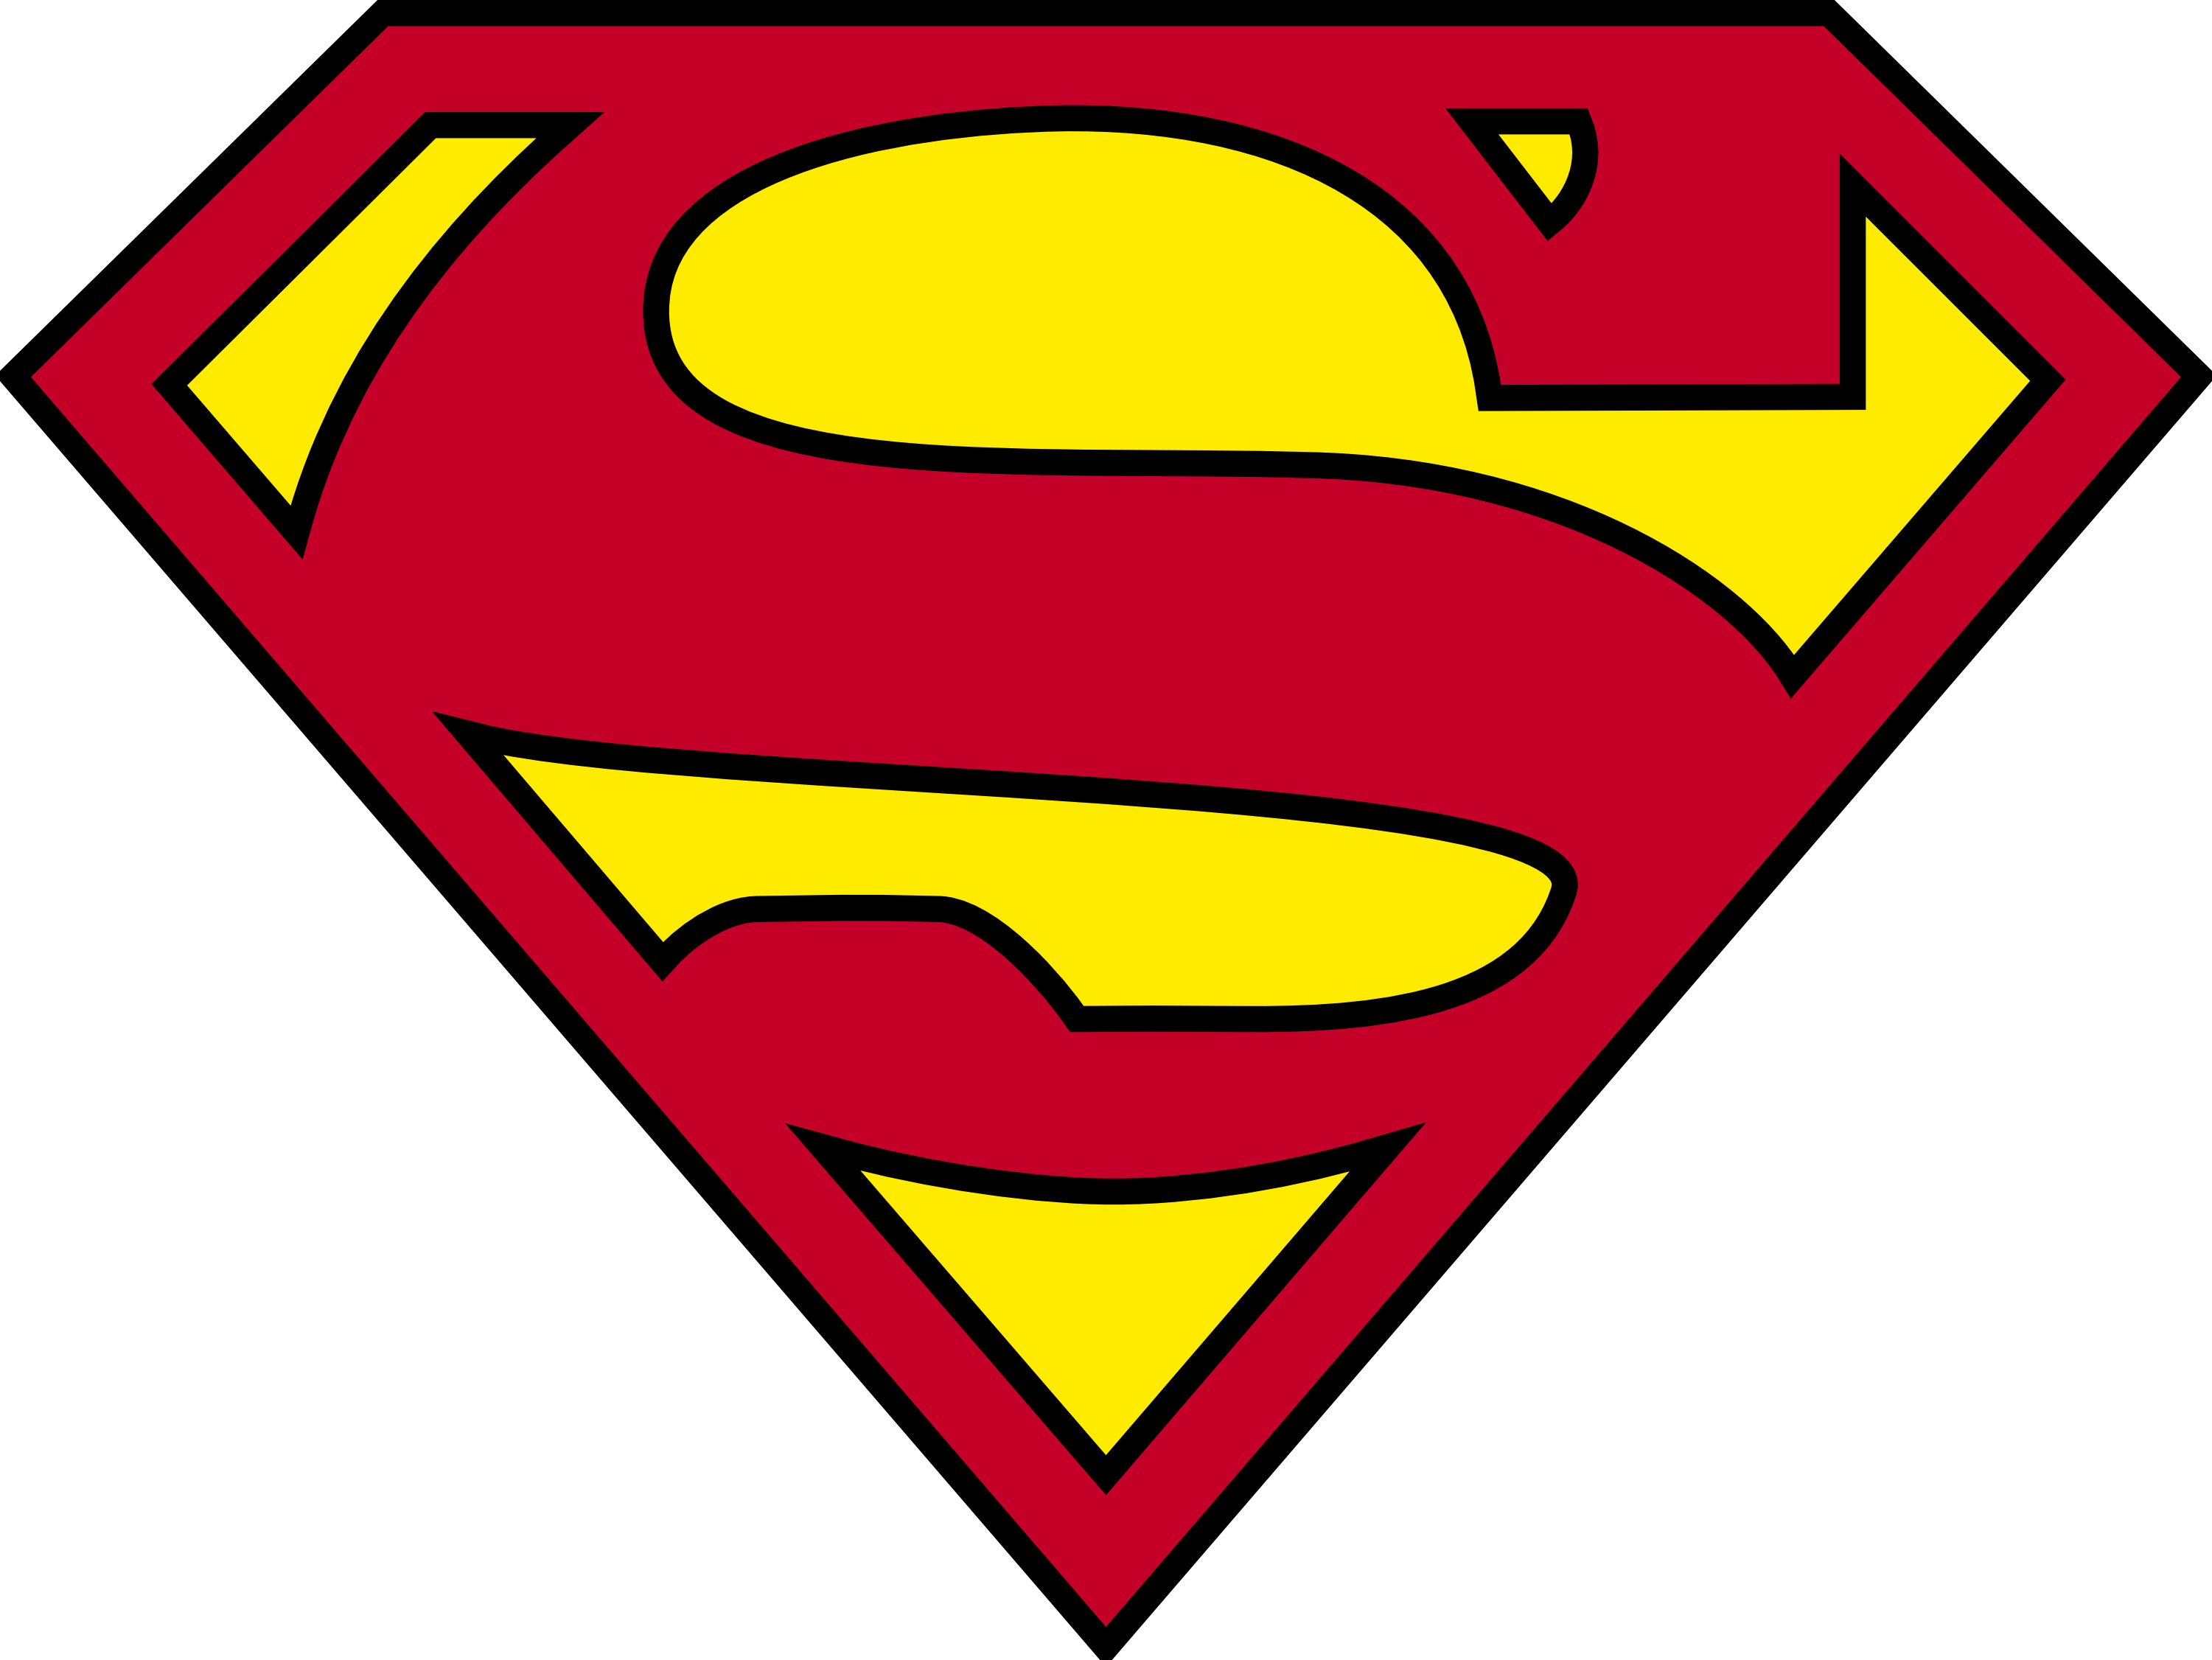 download superman logo free png photo images and clipart freepngimg rh freepngimg com superman logo png image superman logo png image